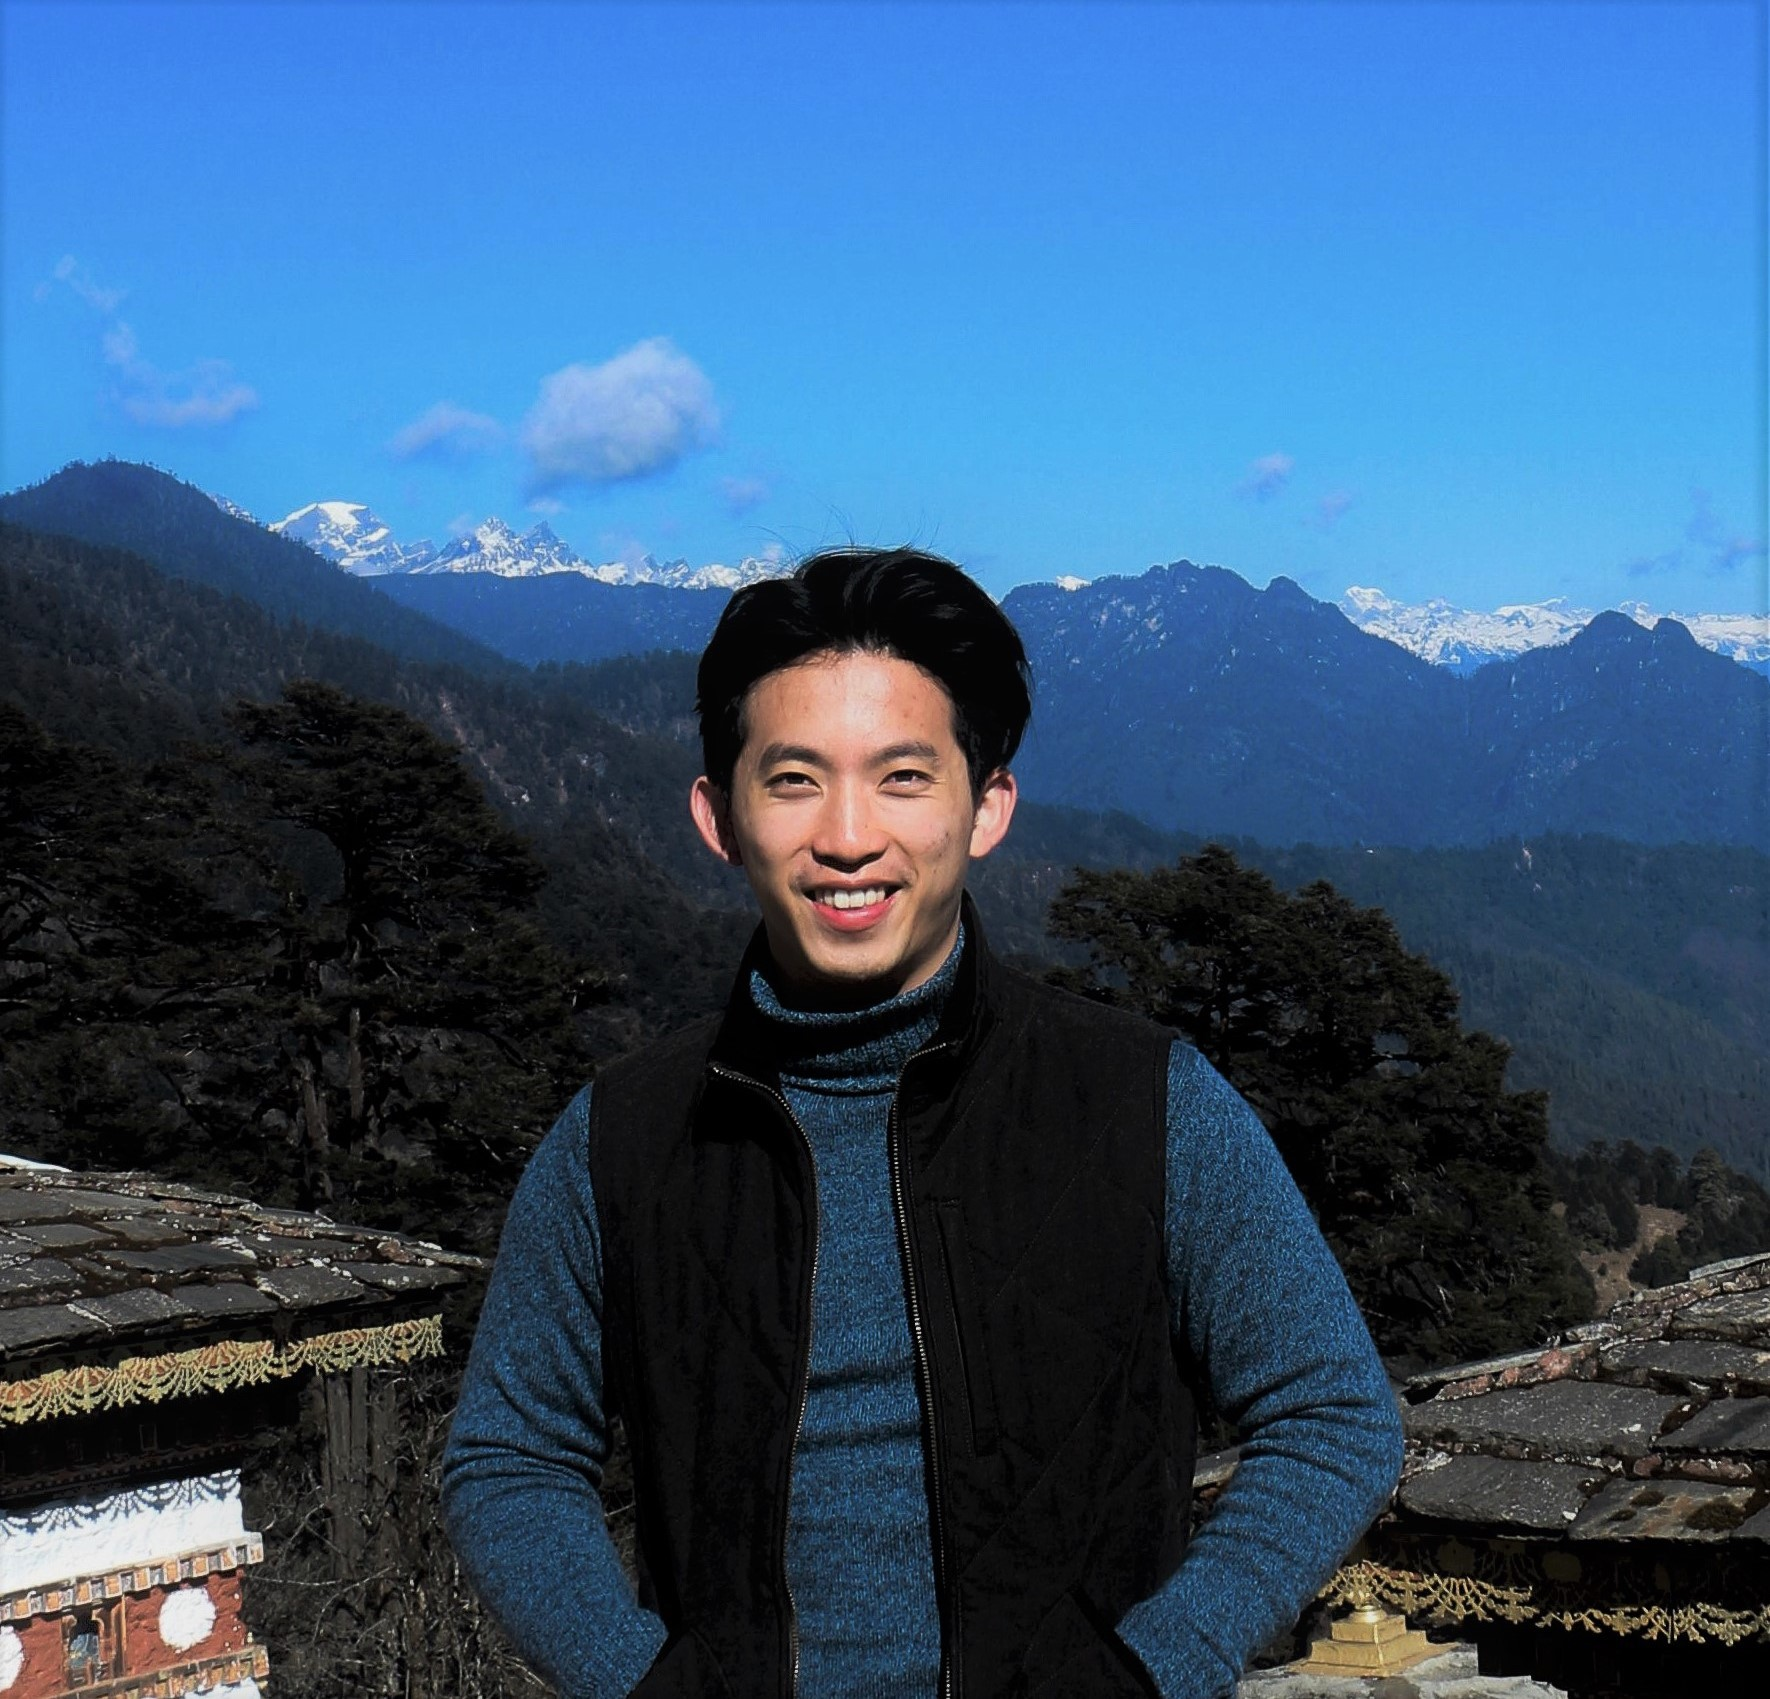 Humphrey Chan started the Asian Australian Project to bring together people from his community and encourage them to embrace their heritage. Image credit: Supplied.